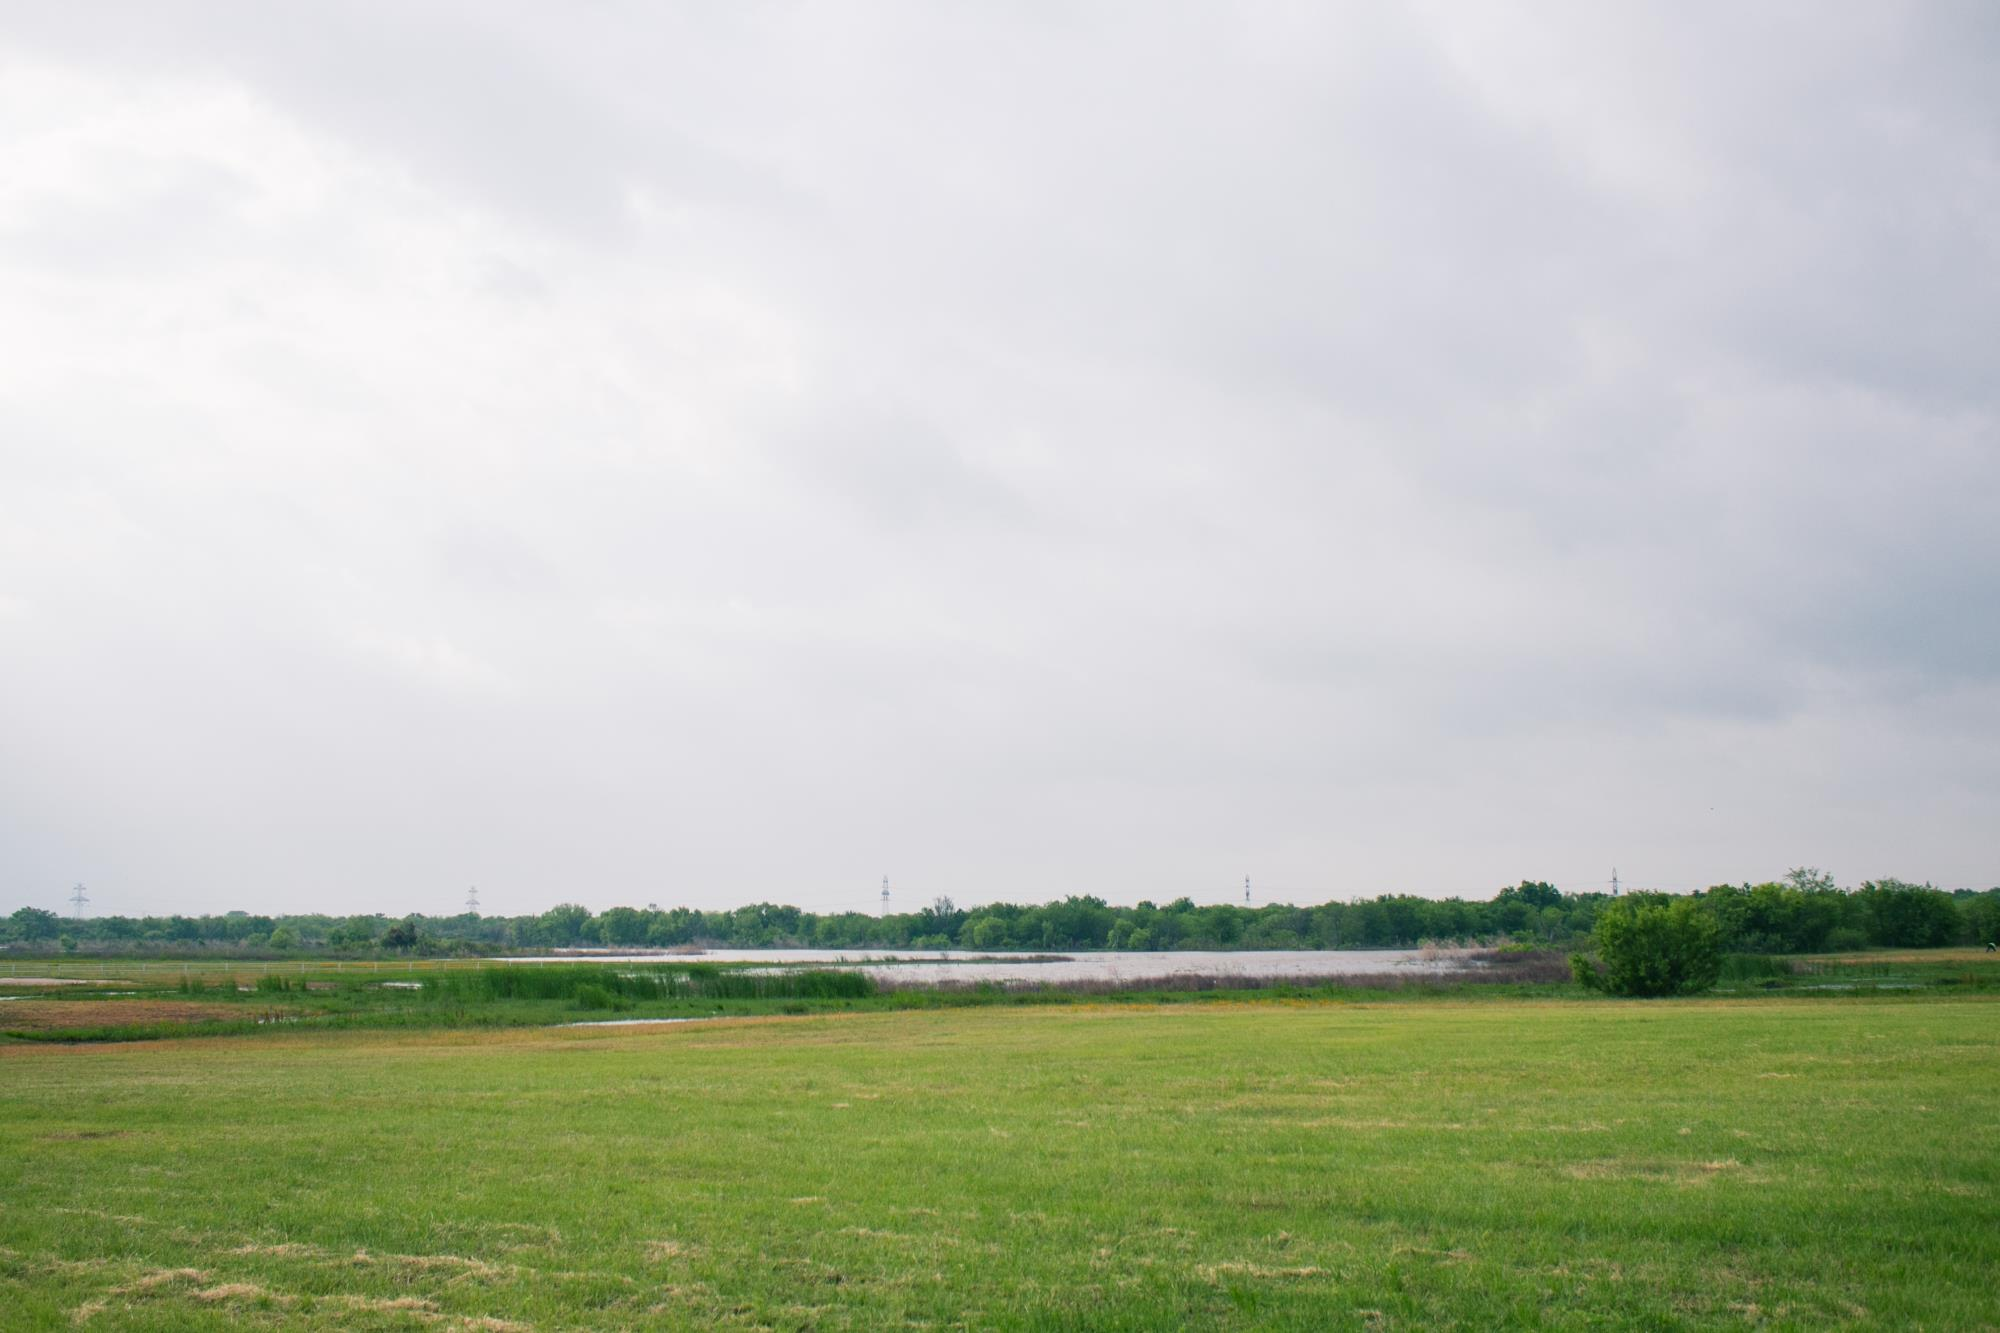 View Overlooking an Empty Grass Field with the Lake Seen Beyond It